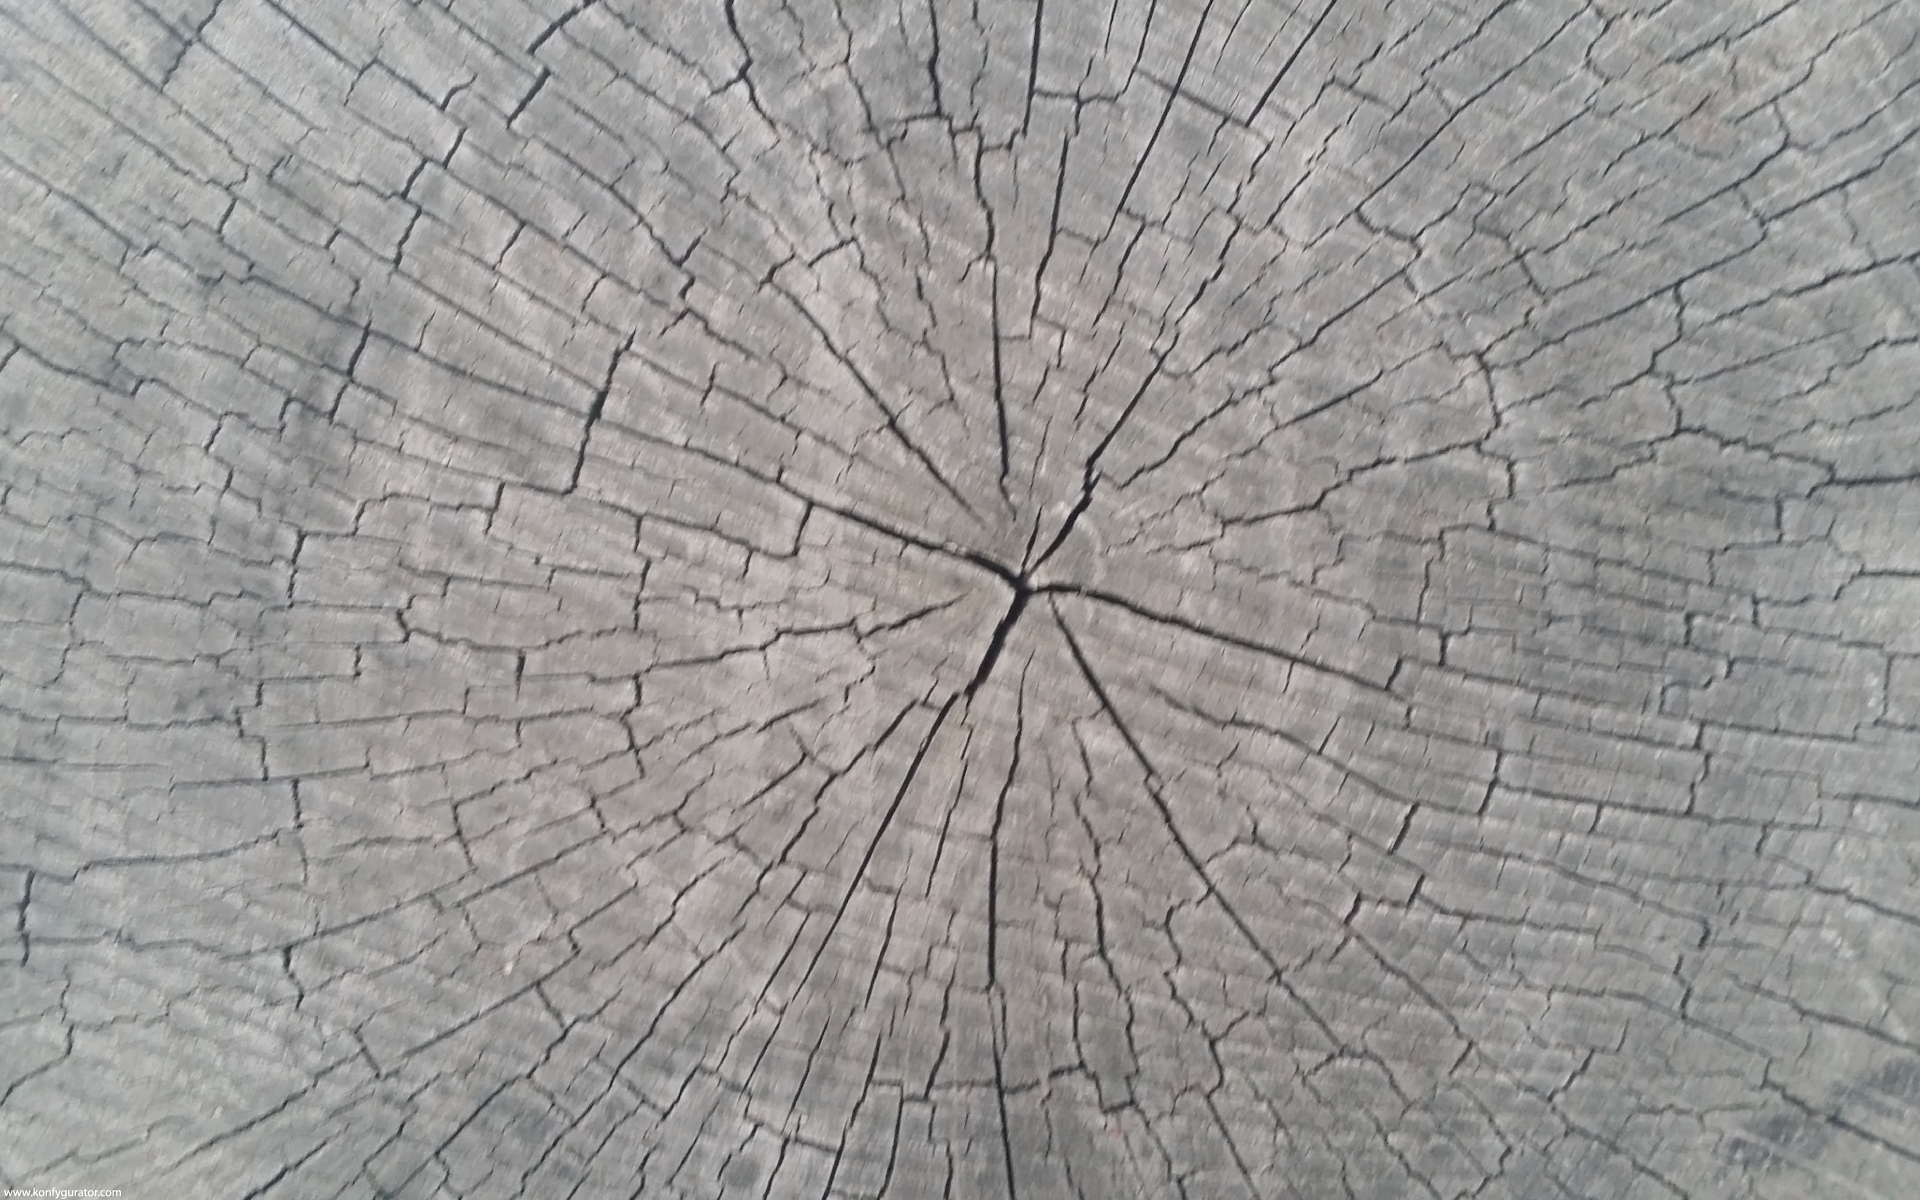 HD Wallpapers - Textures - stump, circle, ring, tree